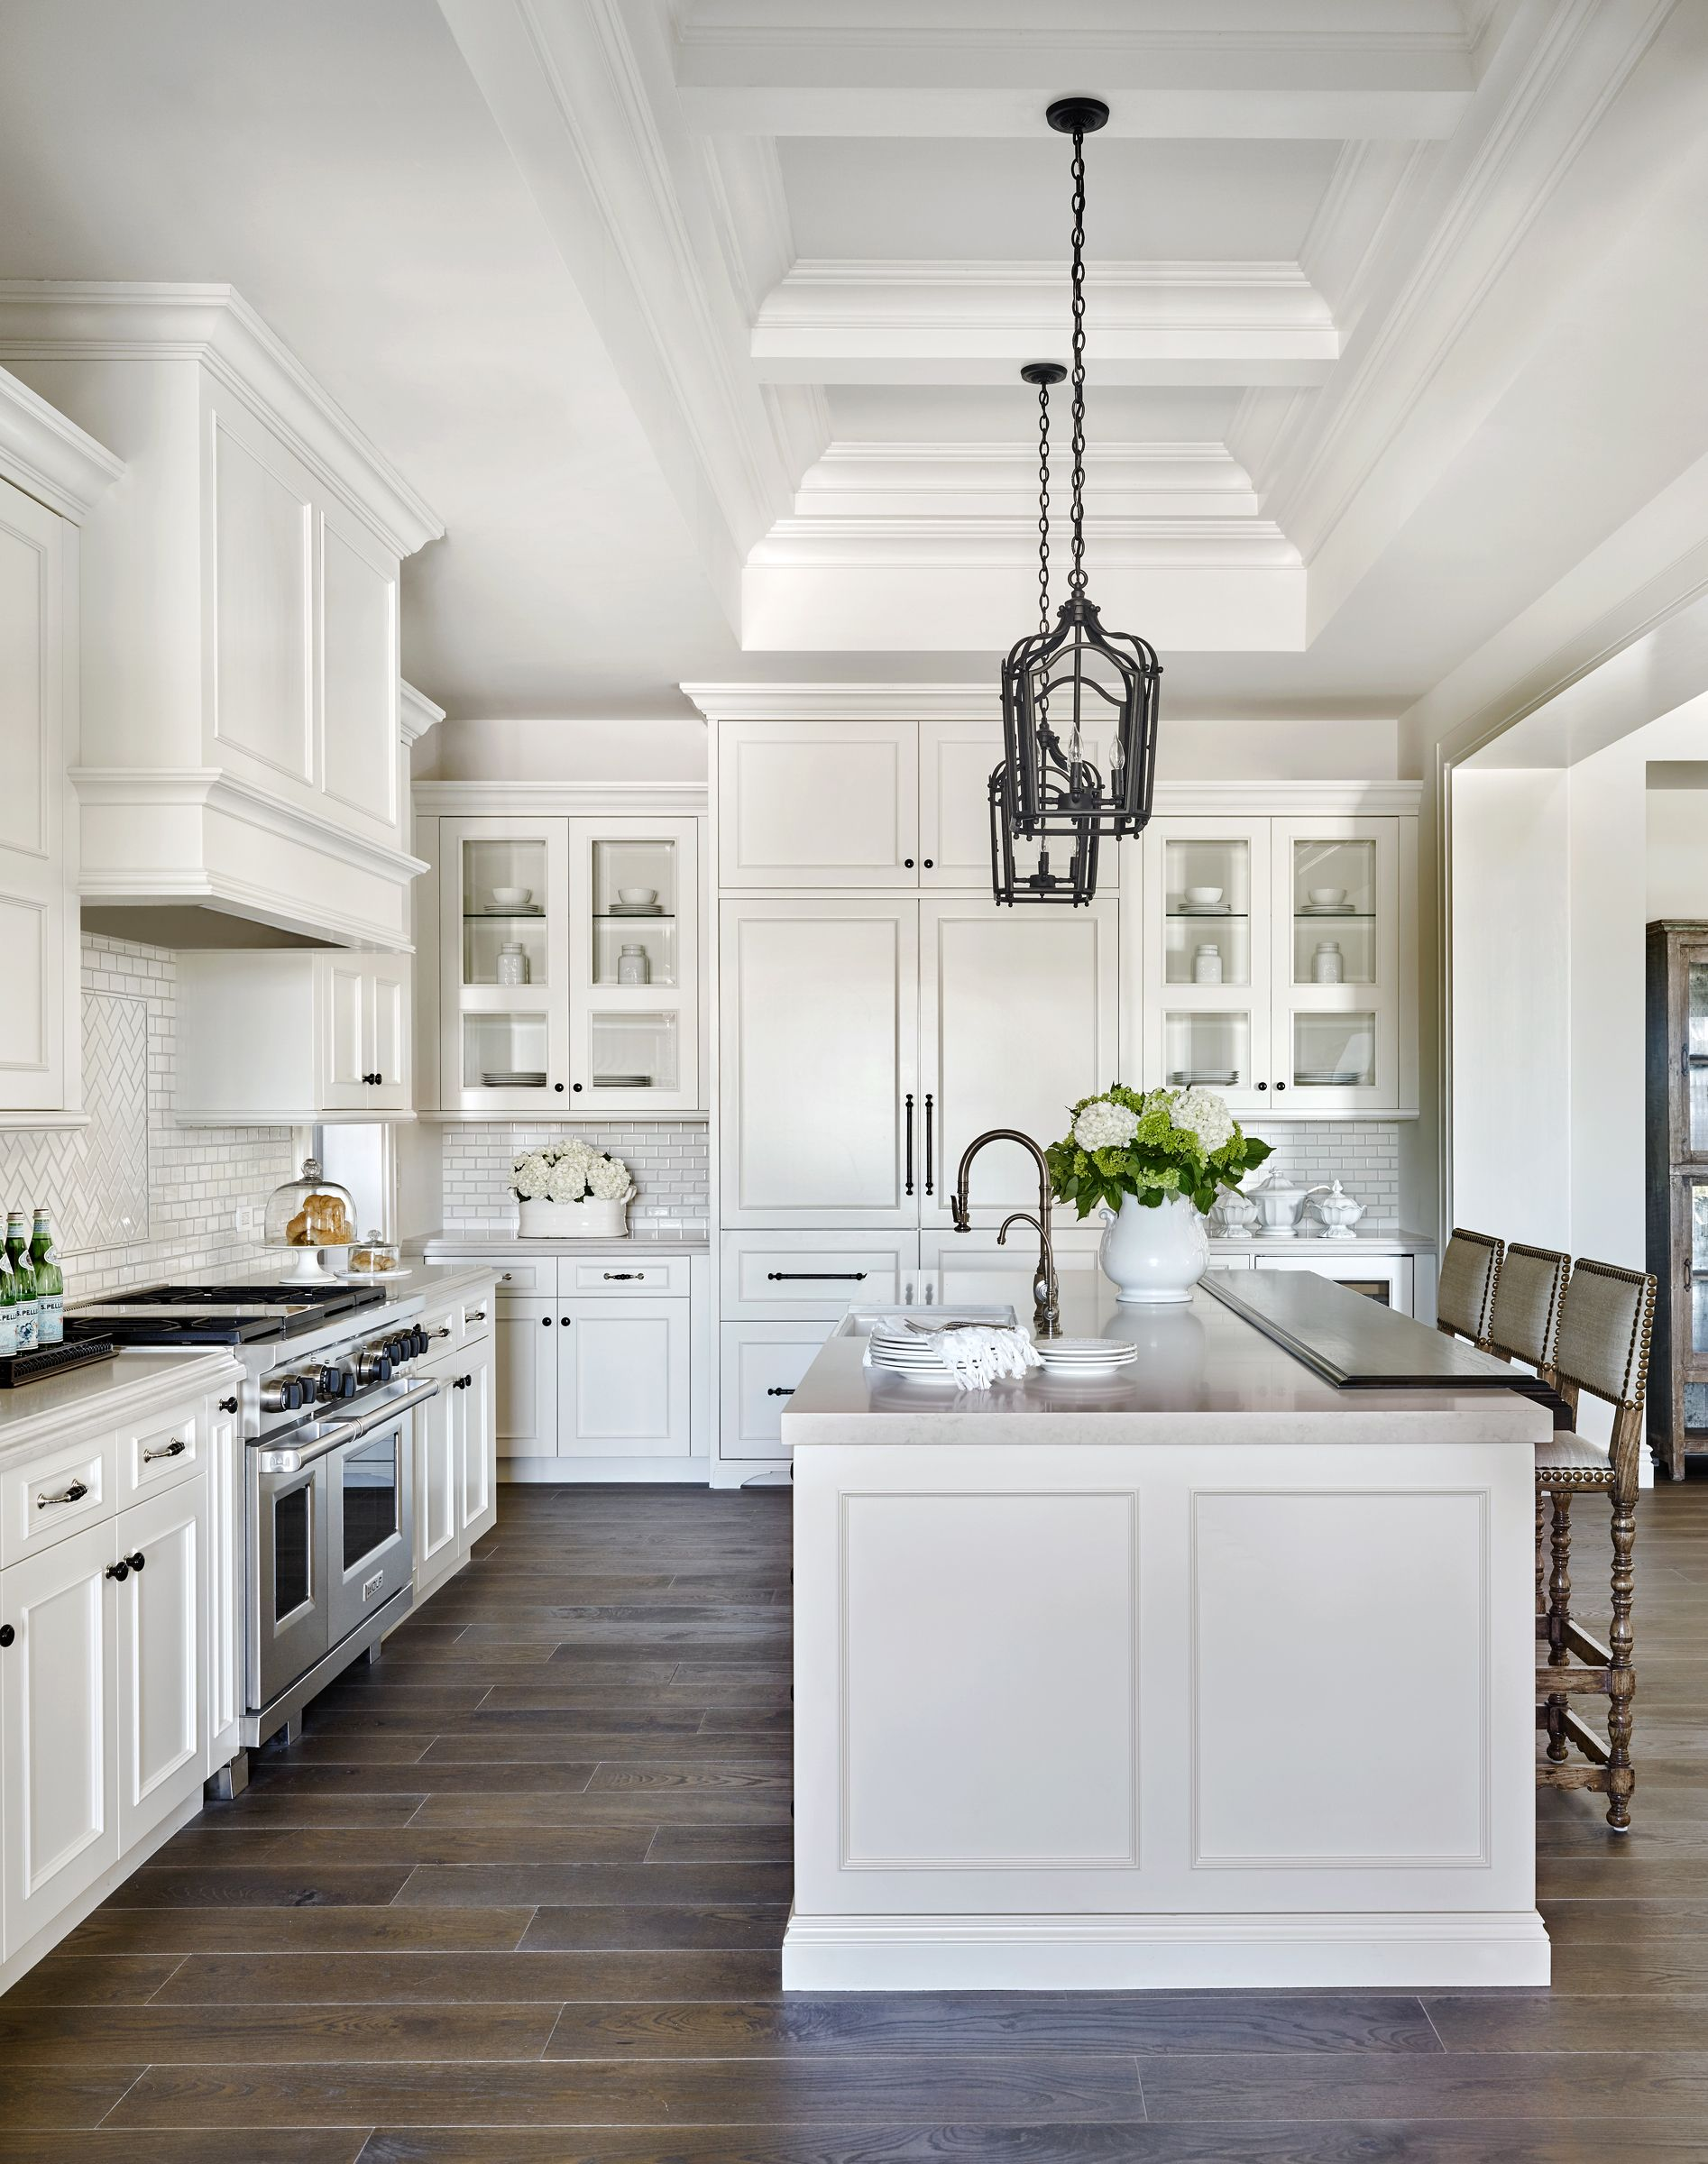 white kitchen cabinets sink with cutting board i want this exact layout of island opposite stove whisper rock traditional calvis wyant custom homes scottsdale az